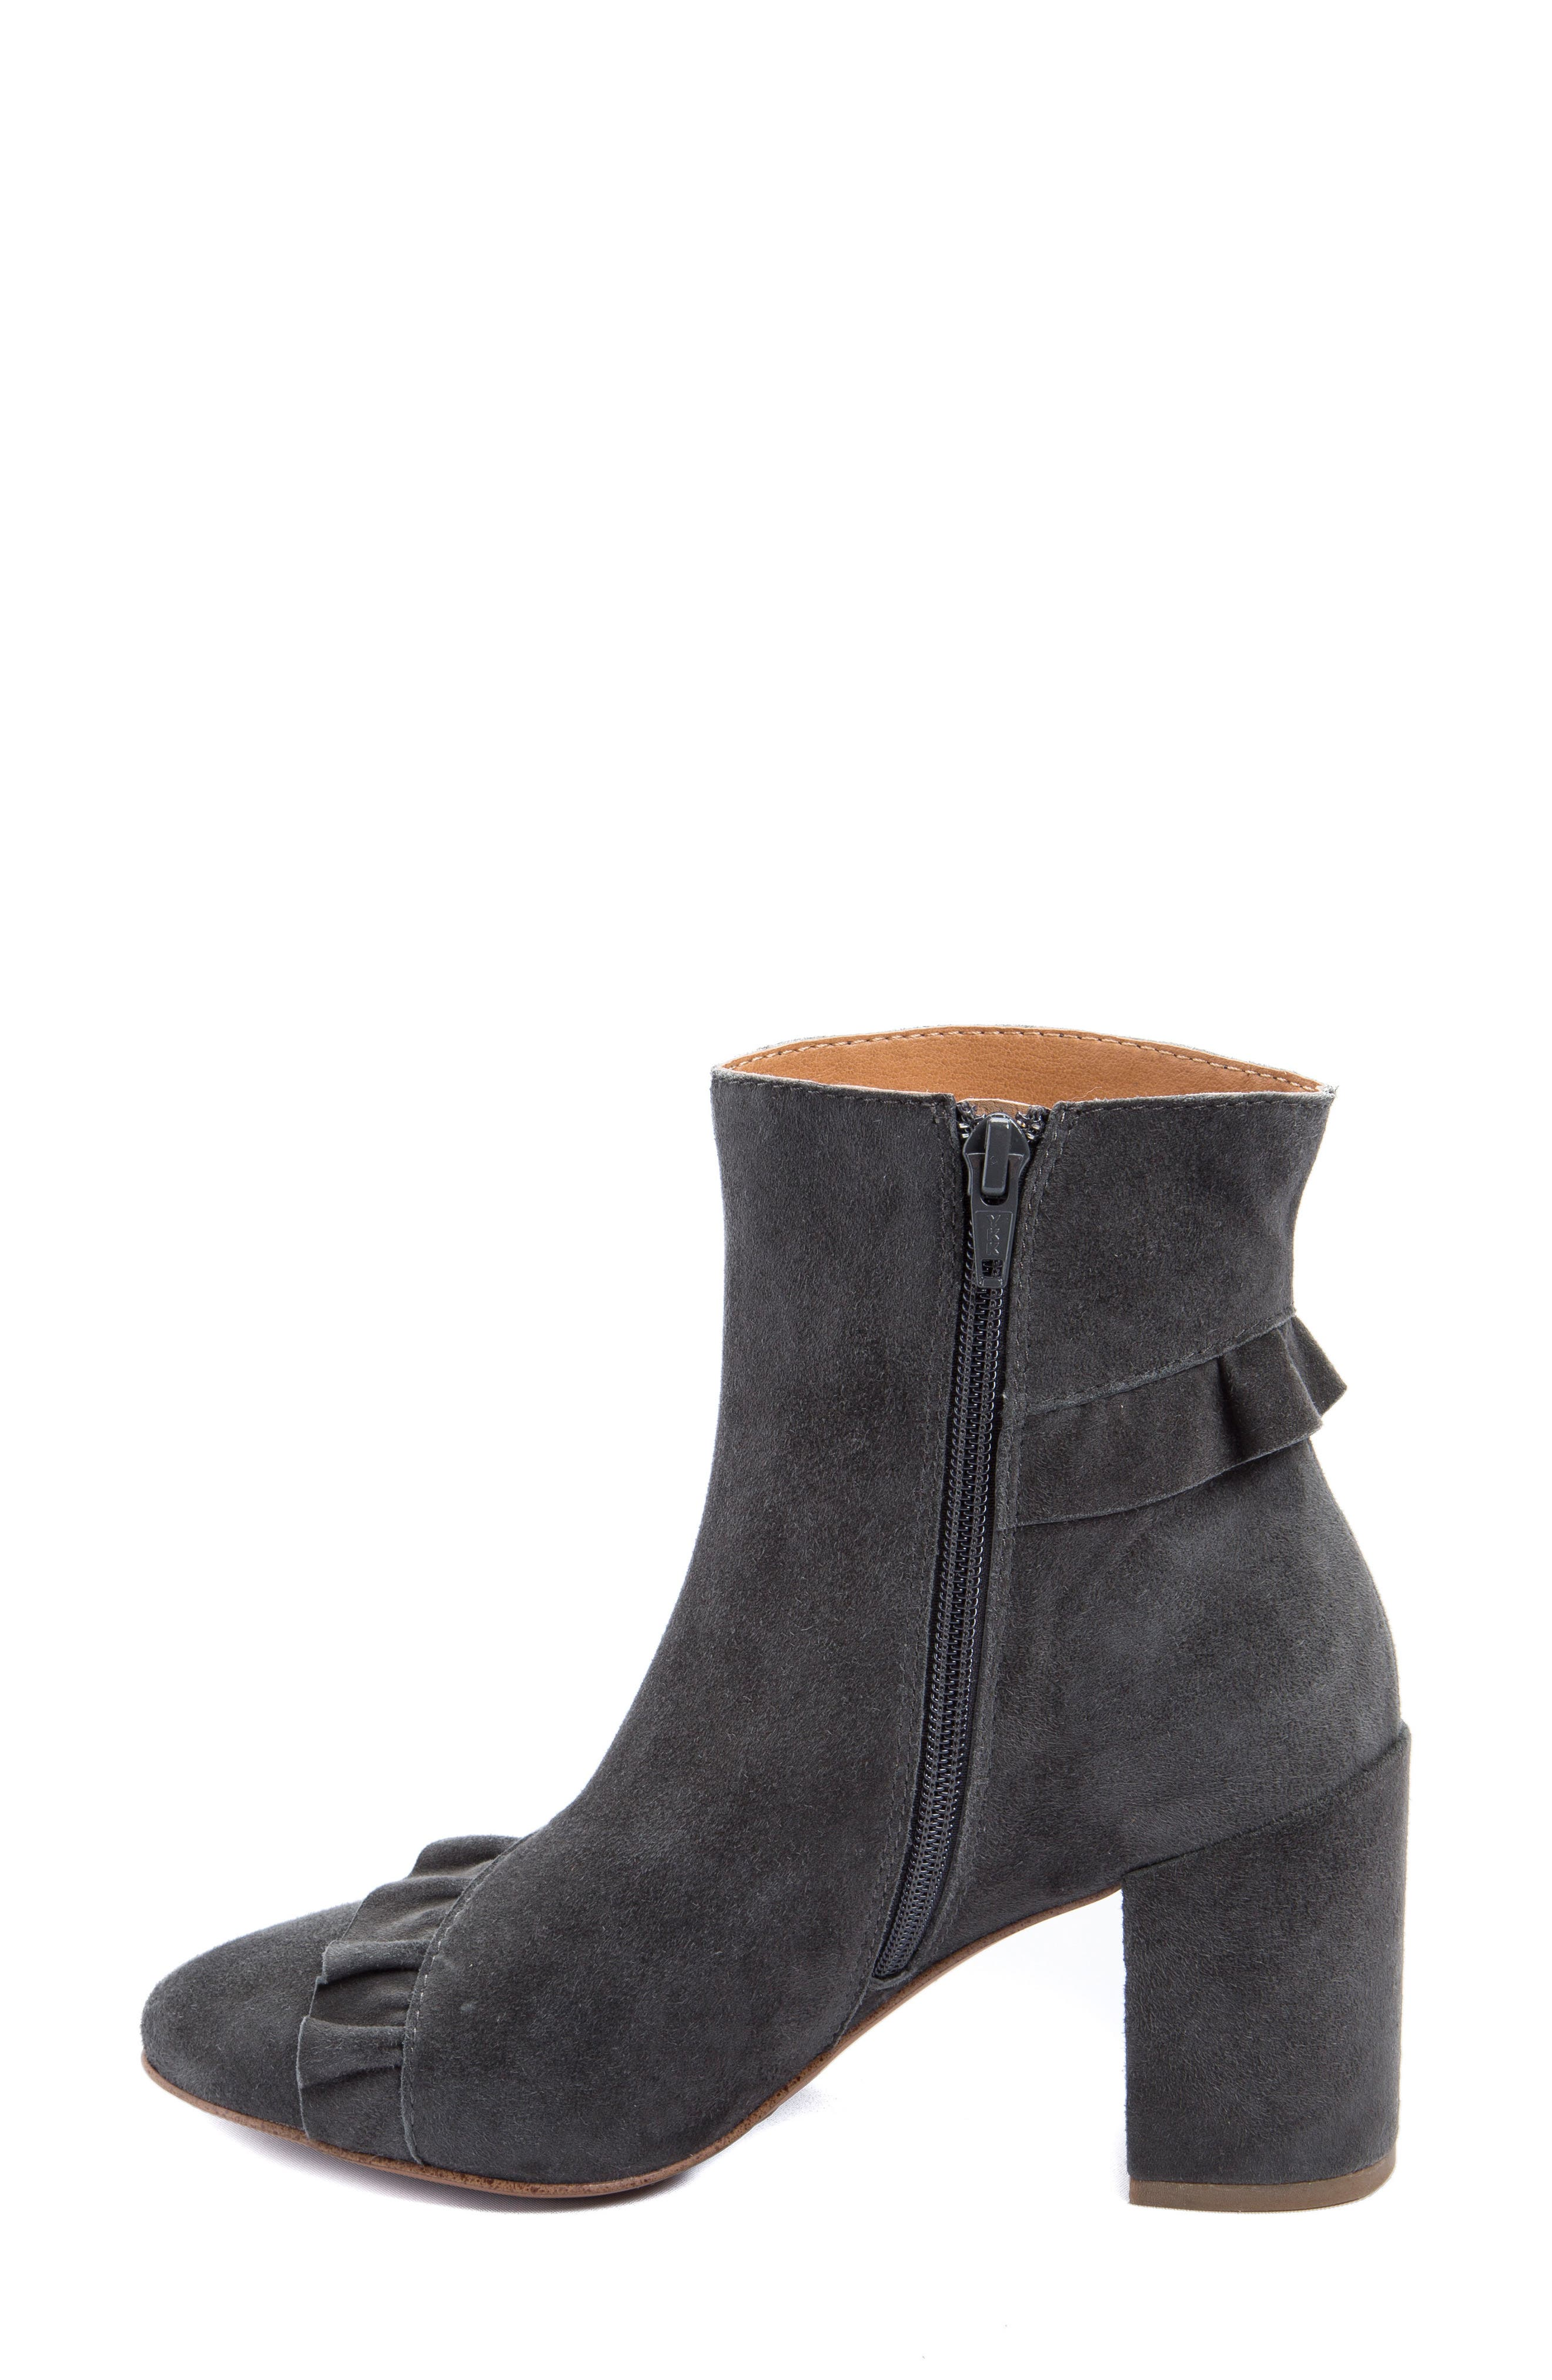 Kahlia Ruffle Bootie,                             Alternate thumbnail 4, color,                             Stone Suede